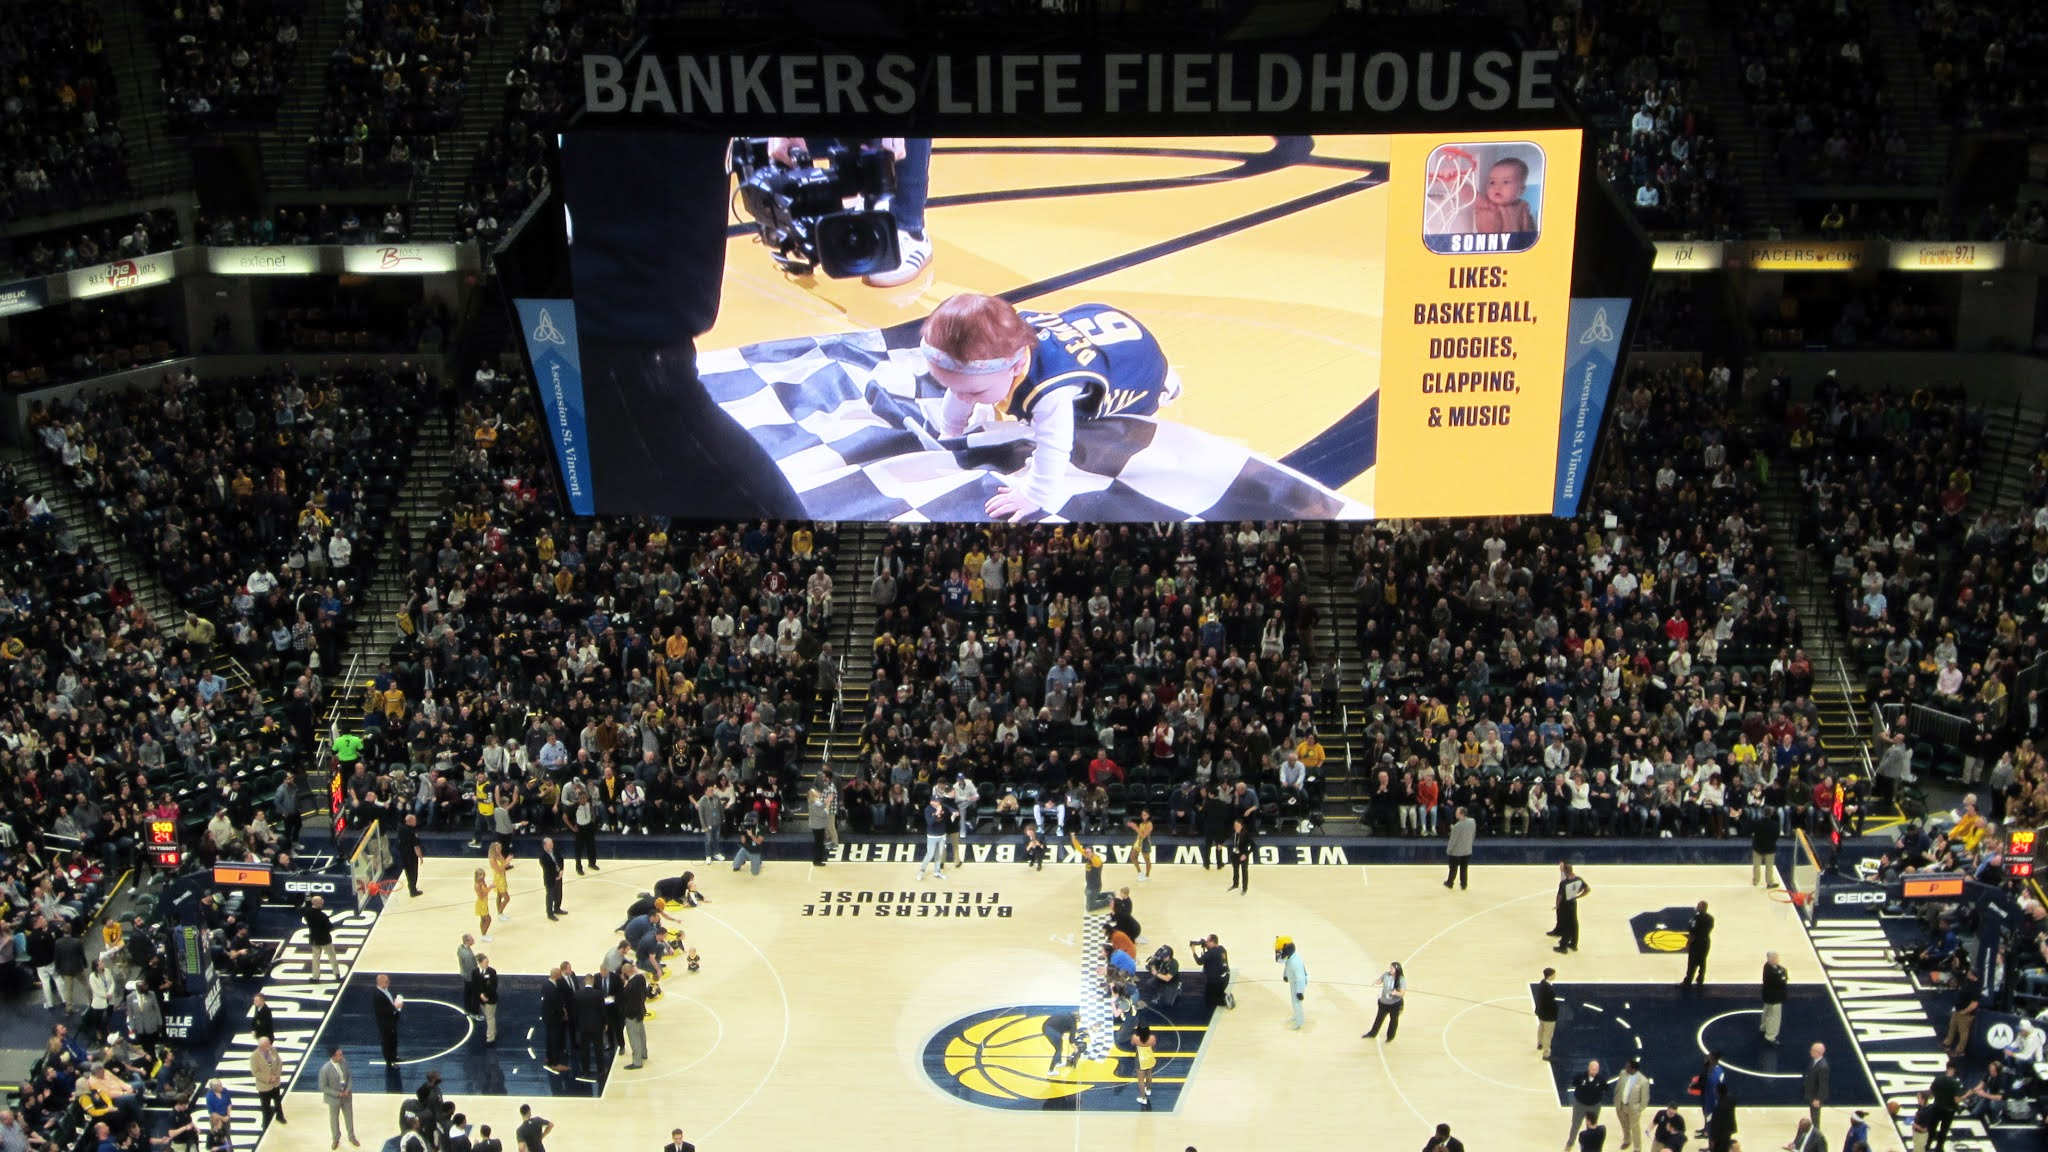 Racing babies at Bankers Life Fieldhouse